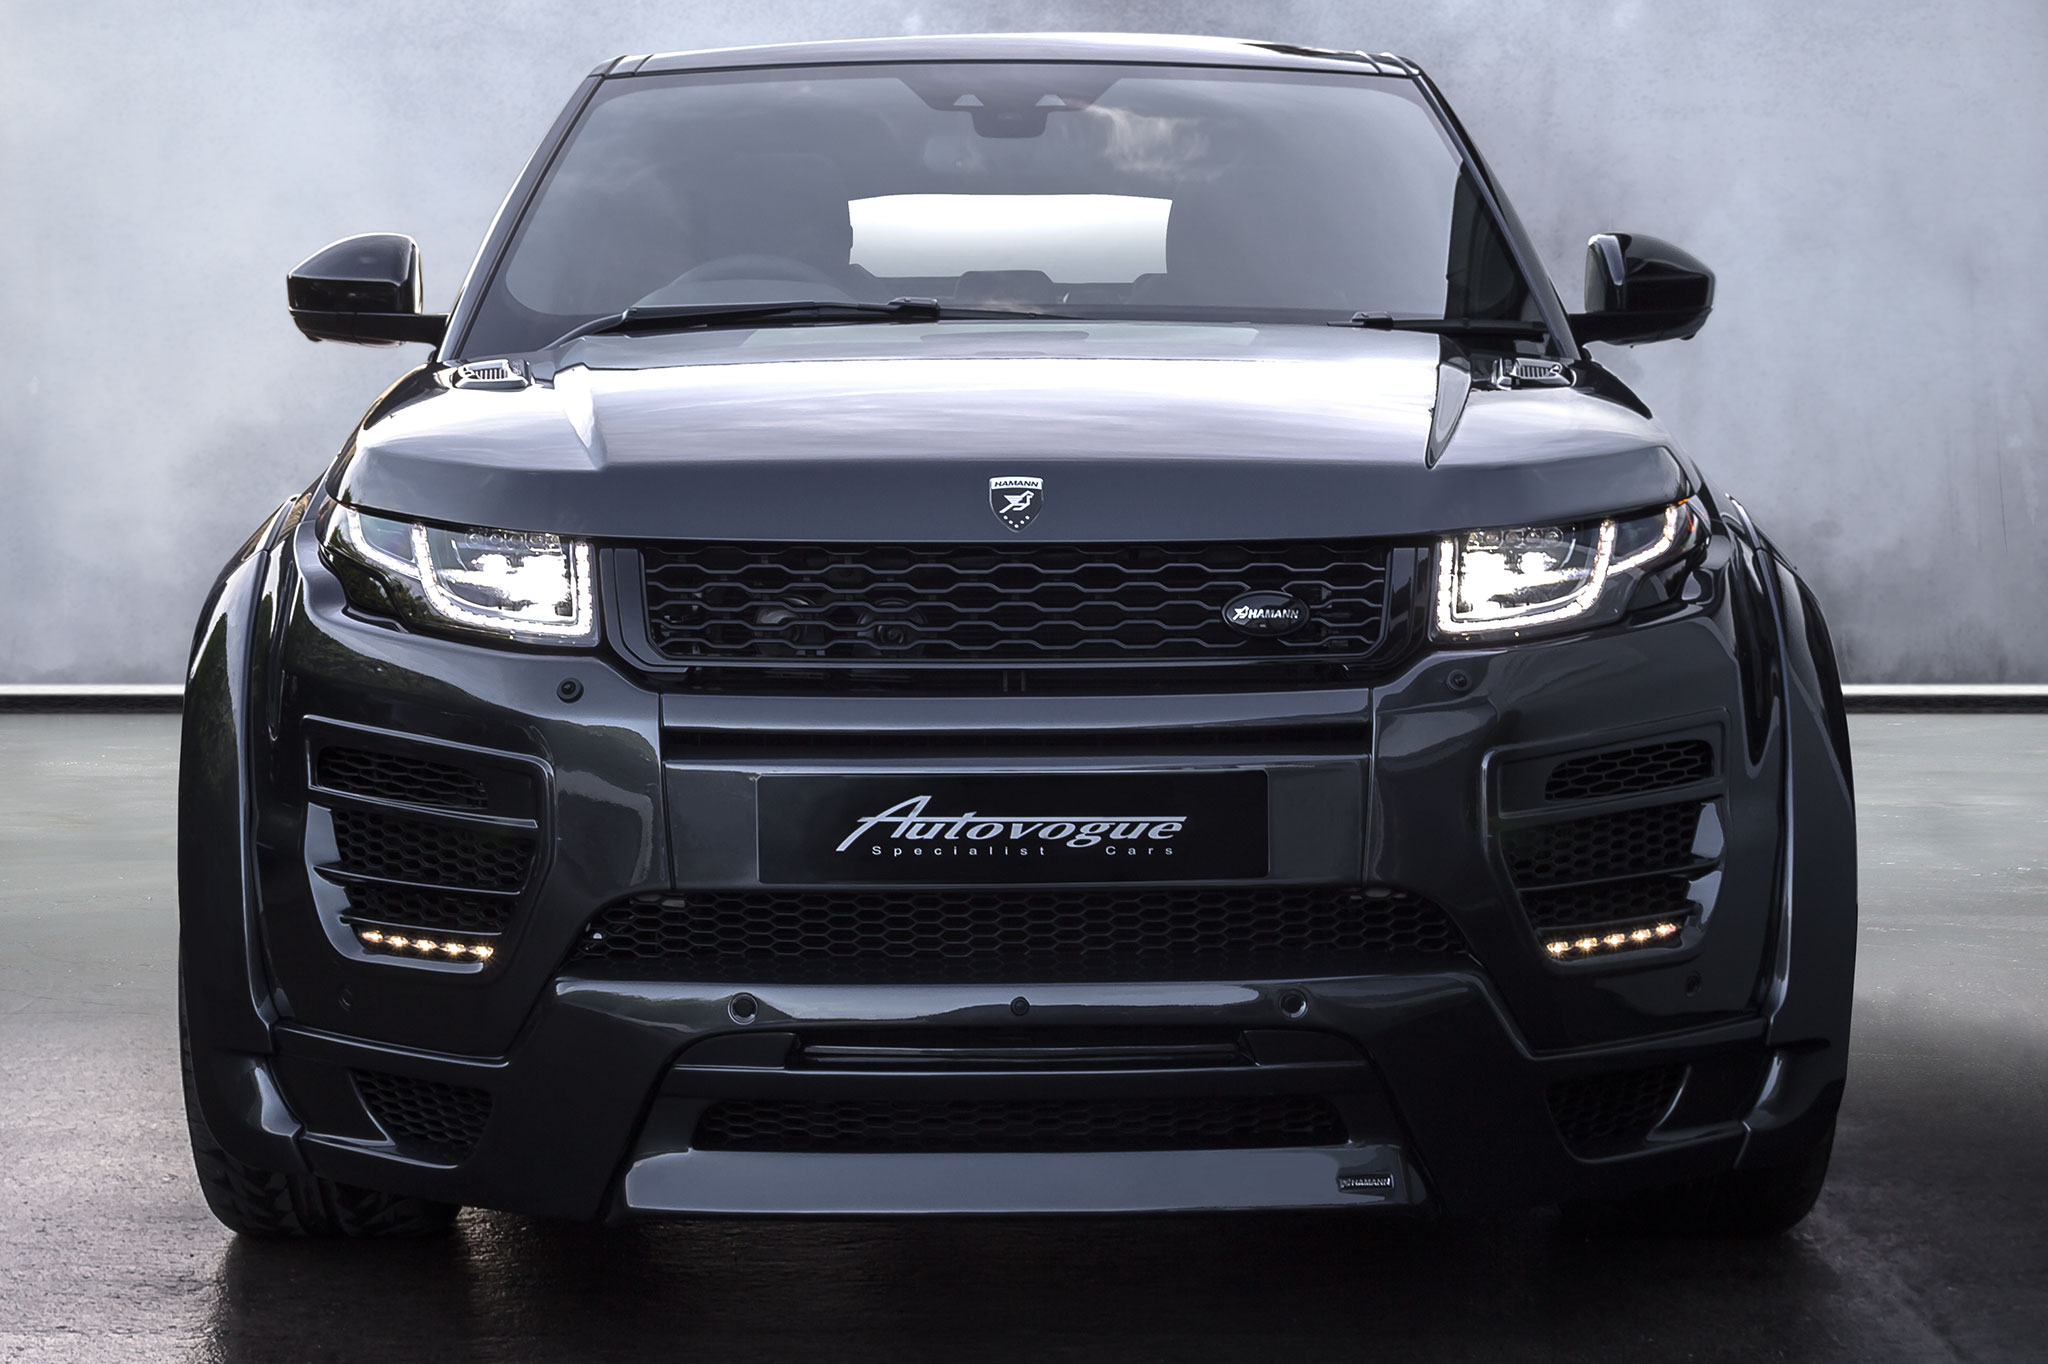 hamann range rover evoque 5 door widebody